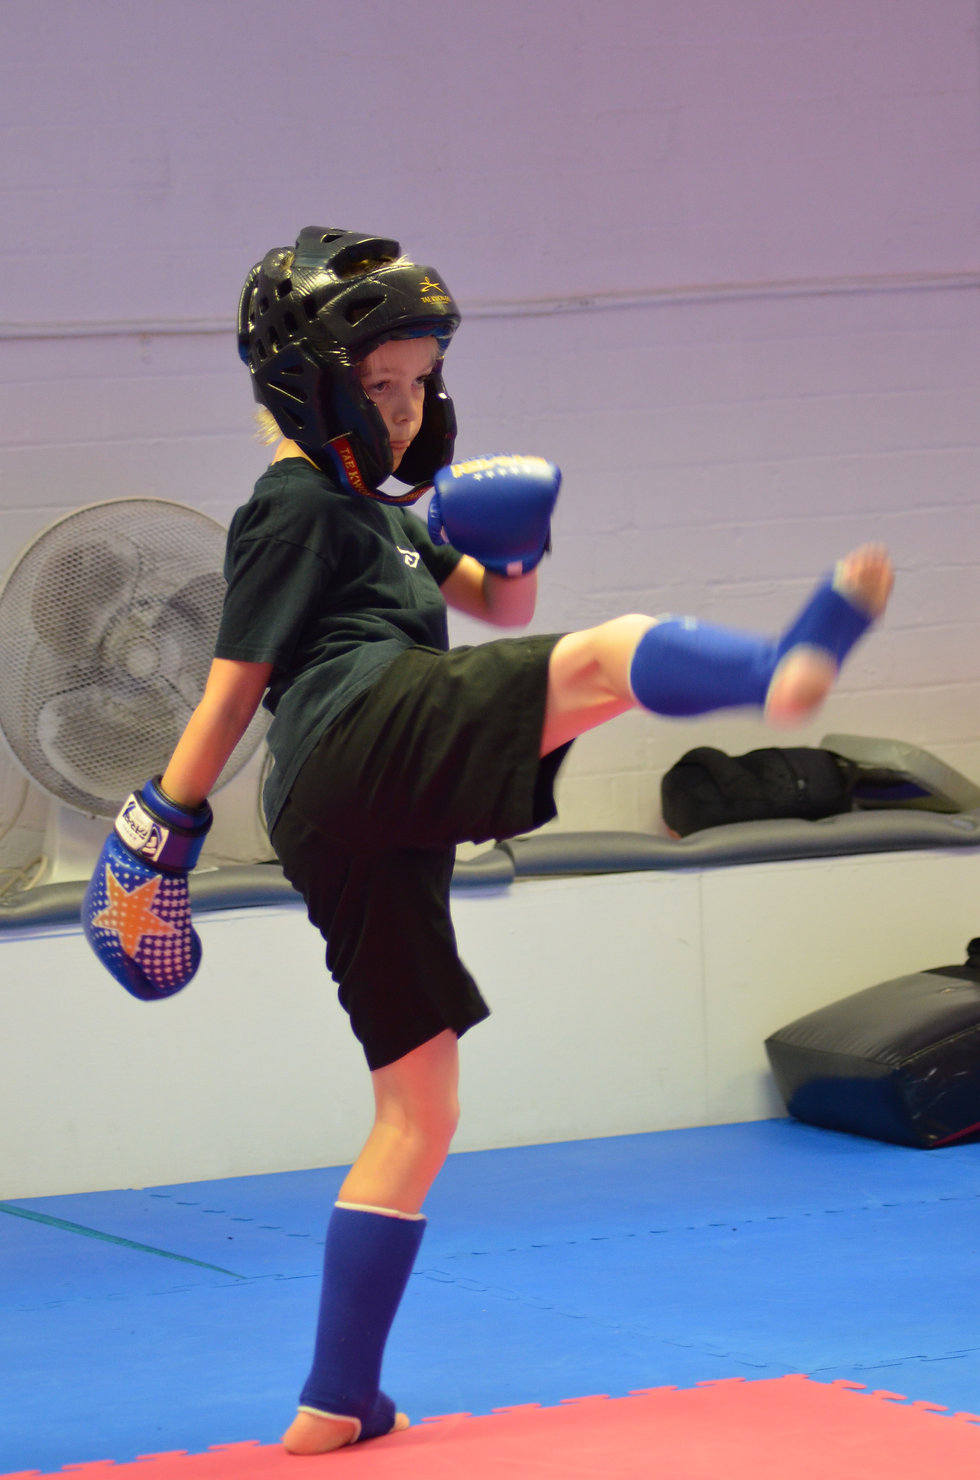 One of our Juniors demonstrating a kick